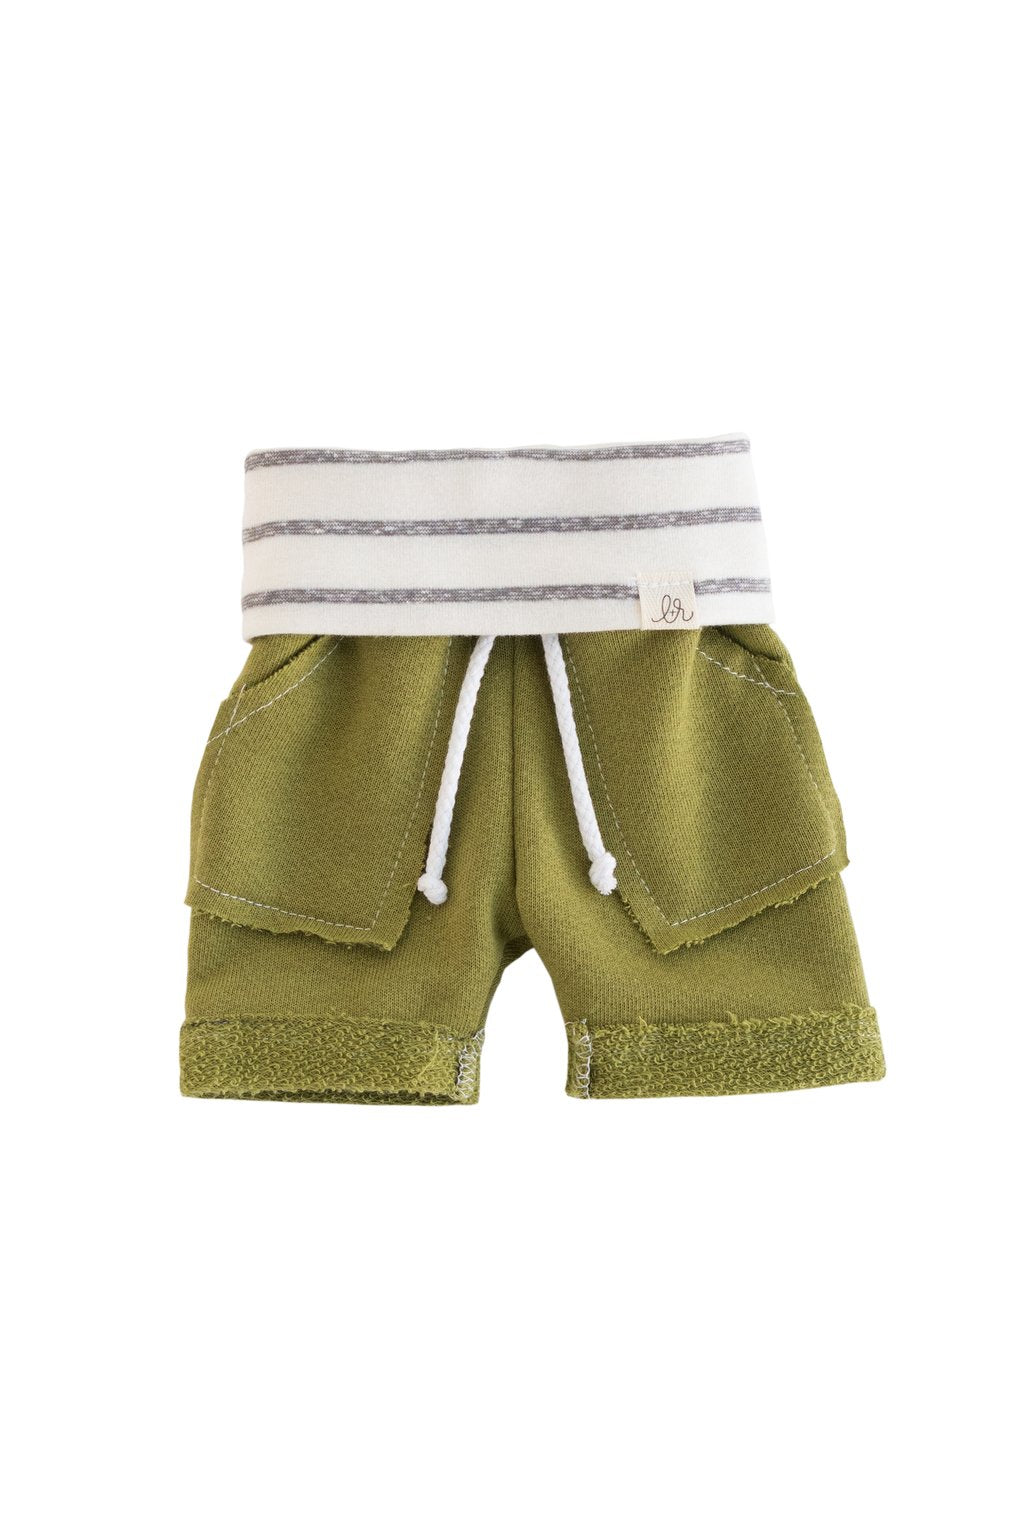 Palm Leaf and Coastal Stripe Boy Shorts